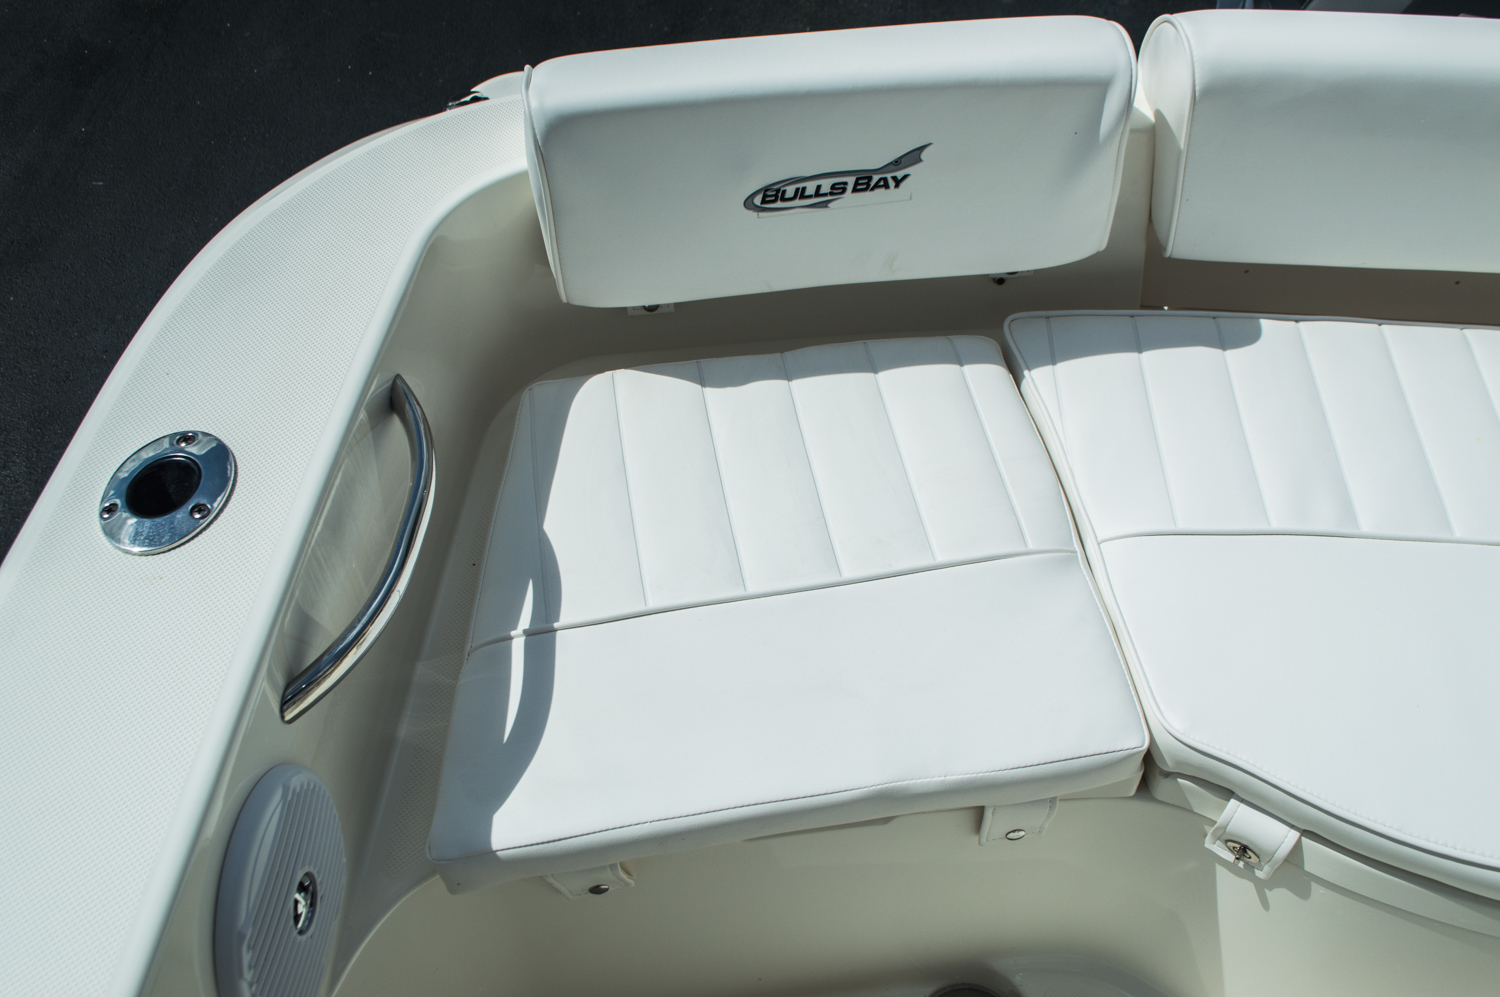 Thumbnail 28 for New 2016 Bulls Bay 200 CC Center Console boat for sale in Vero Beach, FL